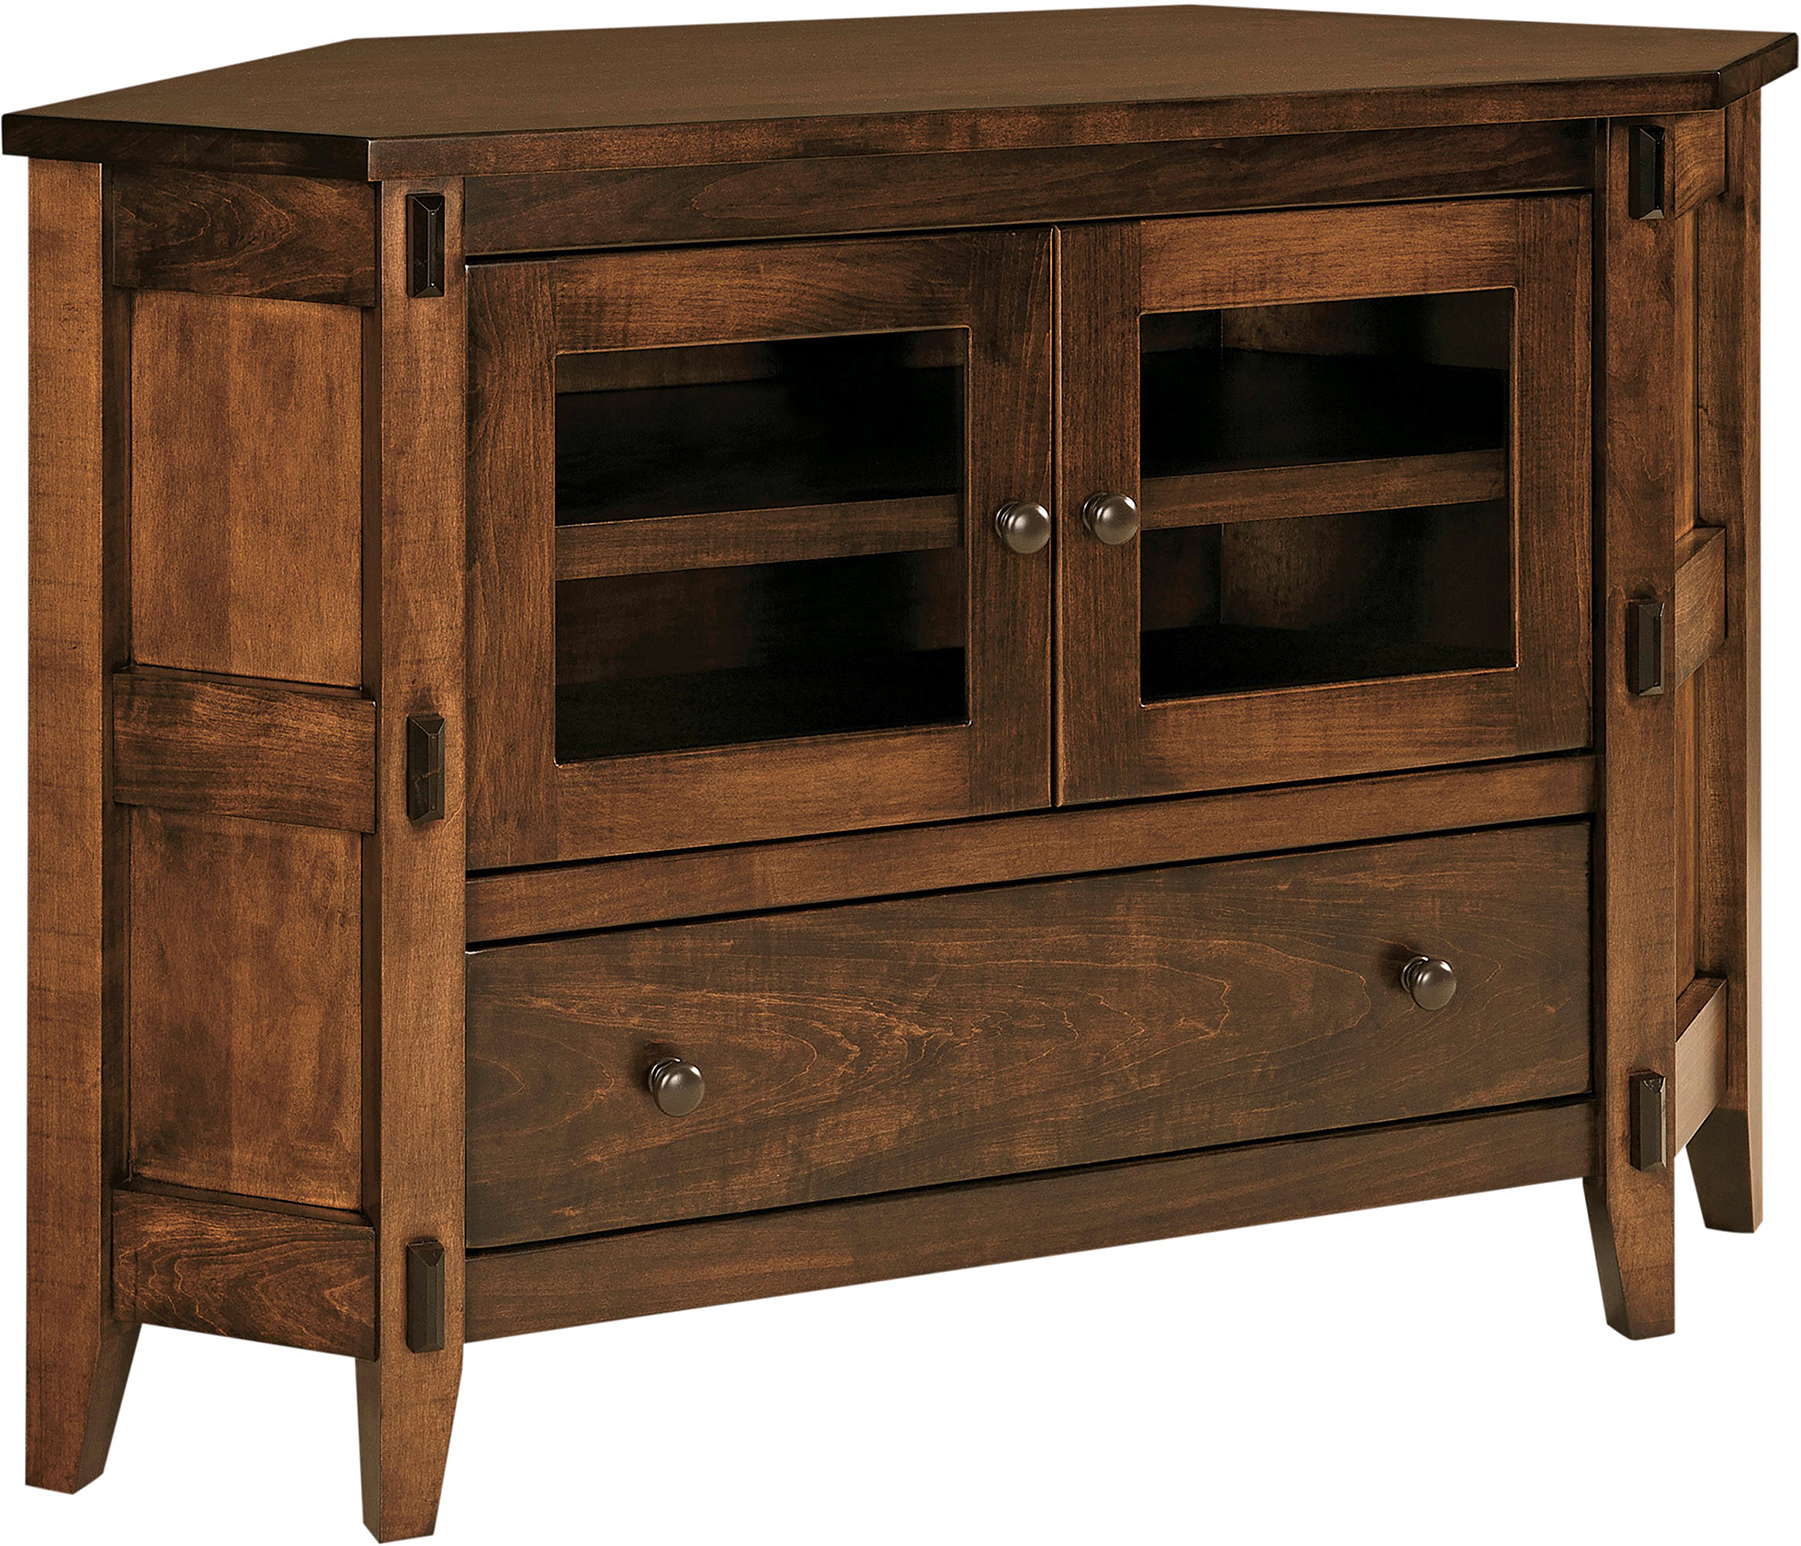 Bungalow Small Corner Tv Cabinet | Amish Bungalow Corner Throughout Corner Tv Cabinet With Hutch (View 11 of 15)